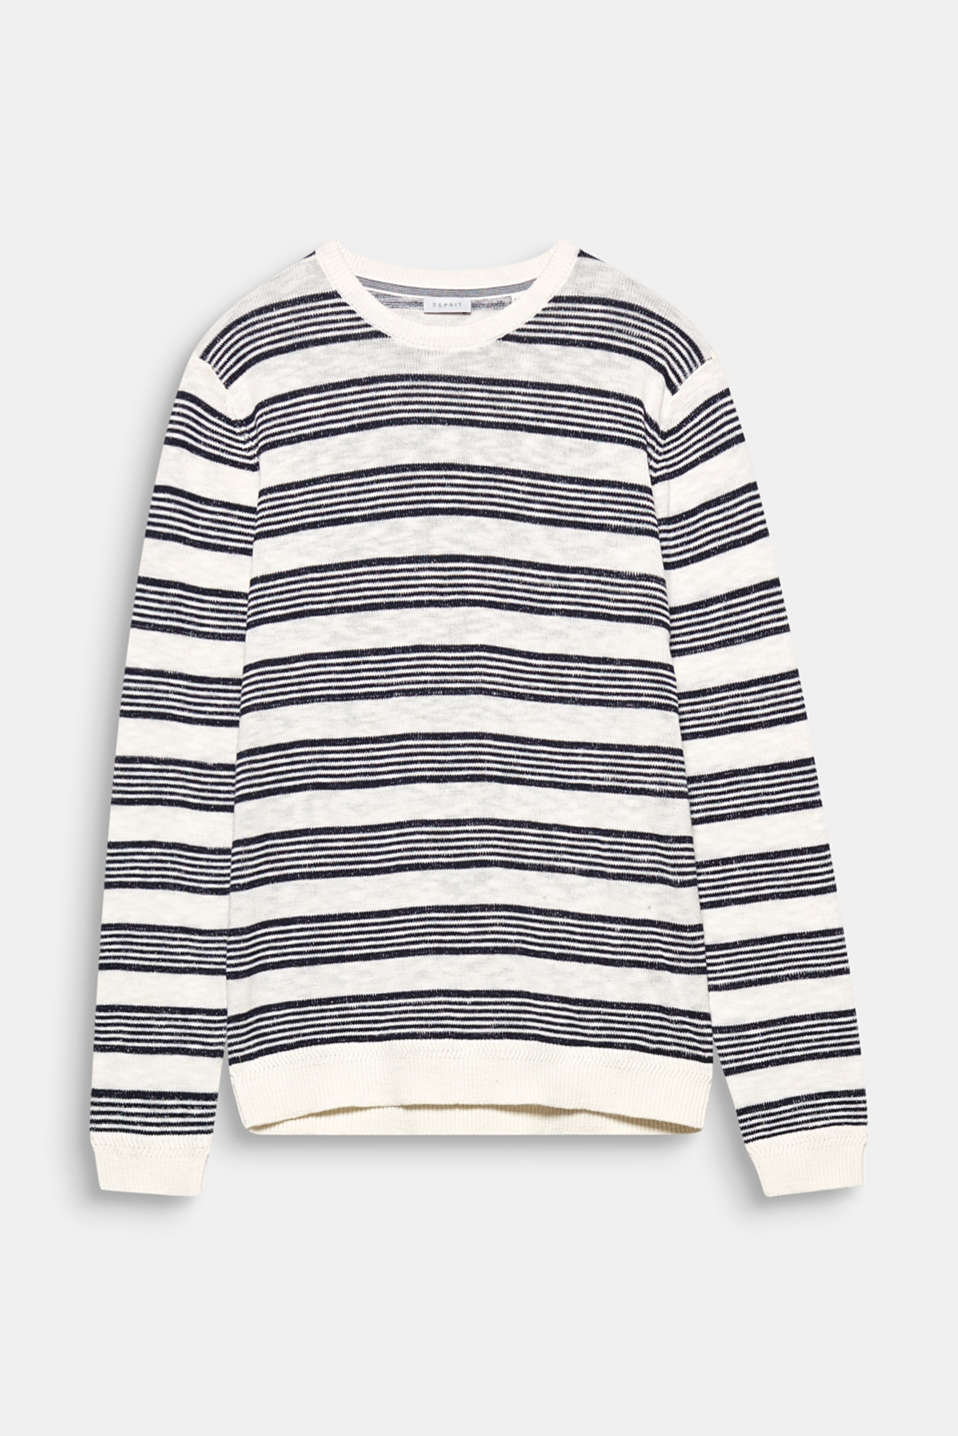 A timeless classic: this slightly melange knit jumper in a cool striped look made of 100% cotton.